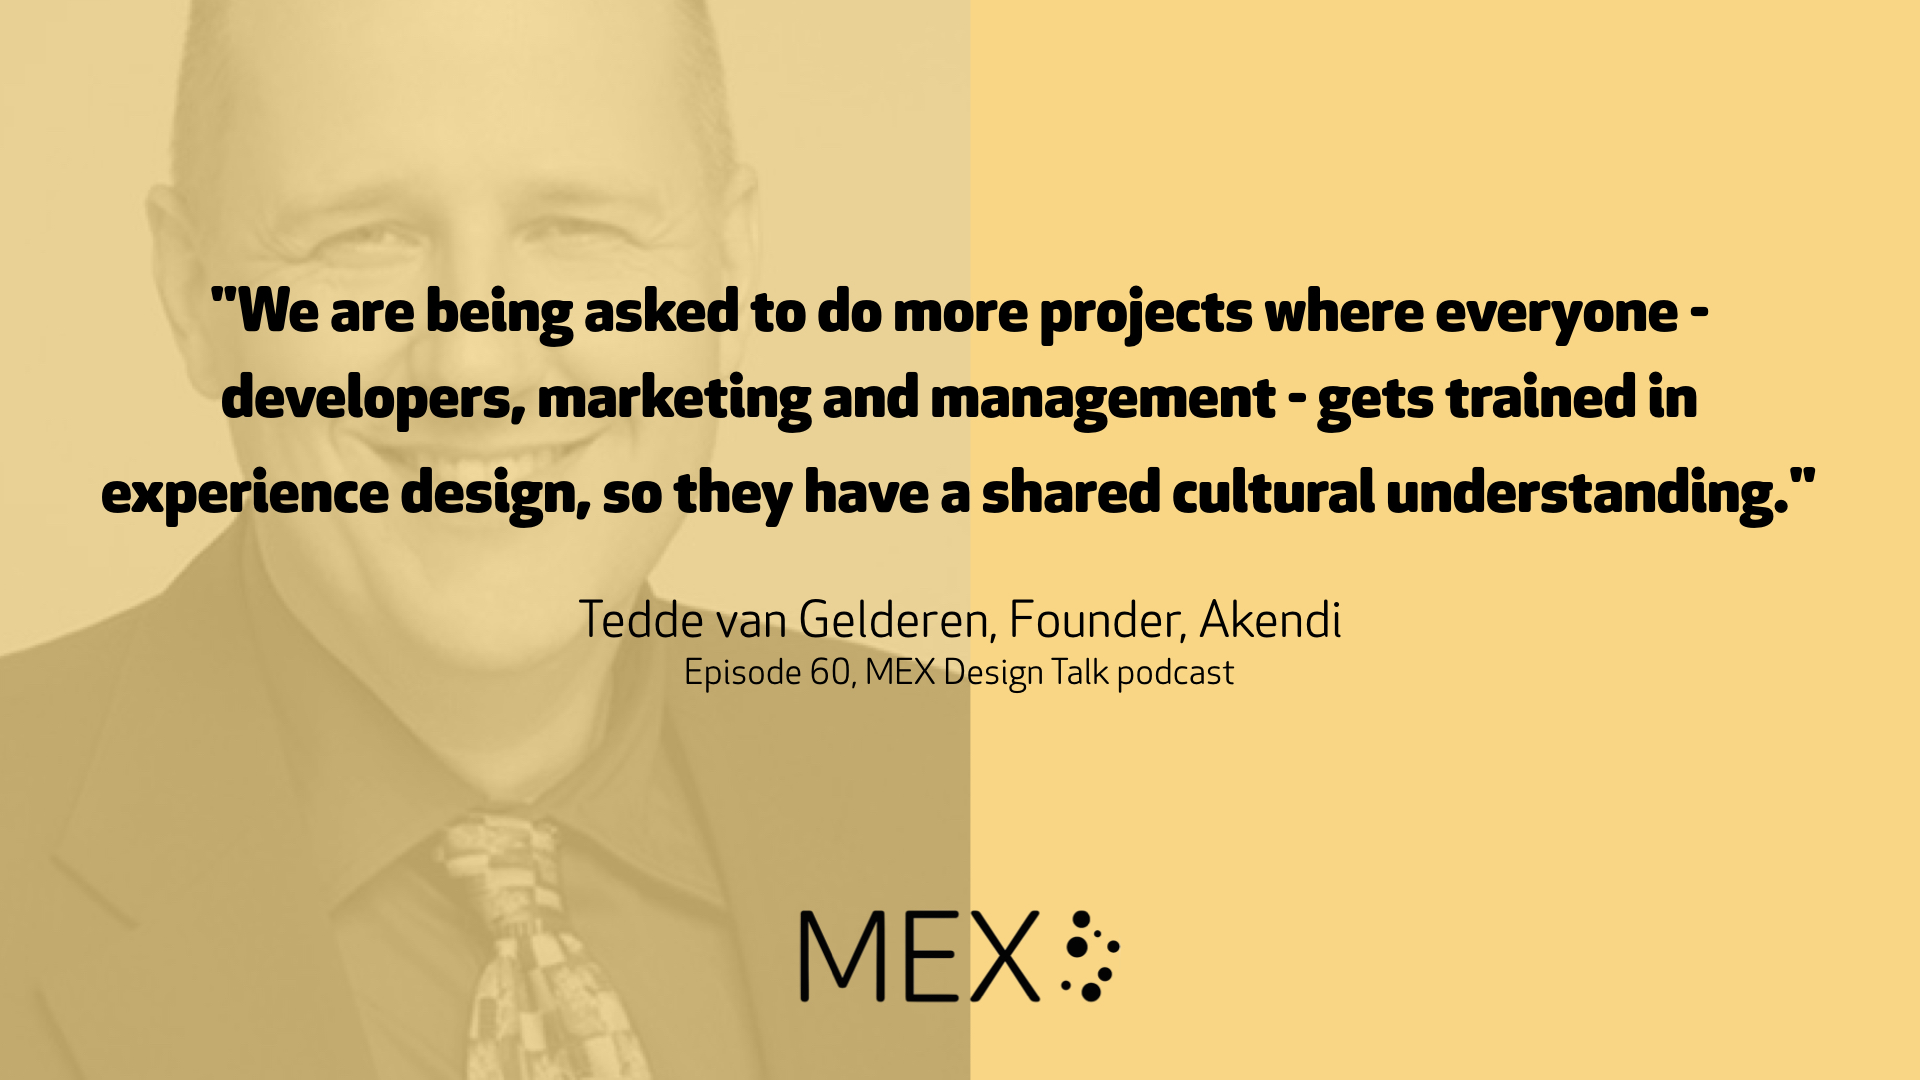 """We are being asked to do more projects where everyone - developers, marketing and management - gets trained in experience design, so they have a shared cultural understanding."" Tedde van Gelderen, Founder, Akendi Episode 60, MEX Design Talk podcast"